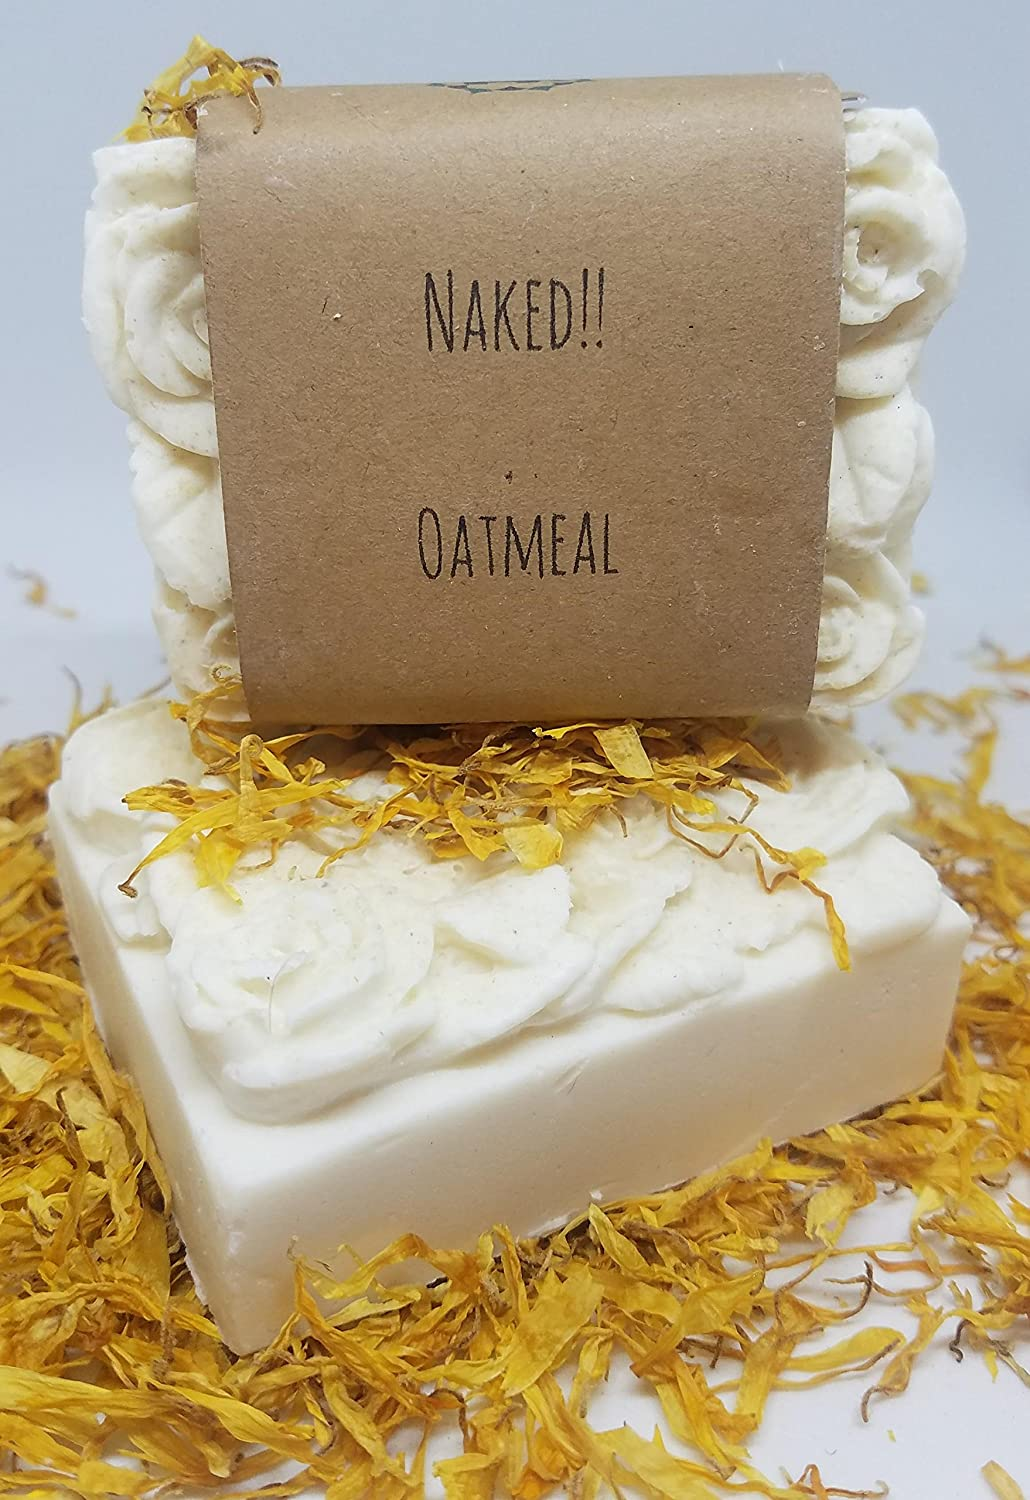 The Honest Elephant Handmade Naked! Oatmeal Lathering Soap in Rose & Leaf Shaped Brick - Fragrance Free, Color Free | FREE SHIPPING!